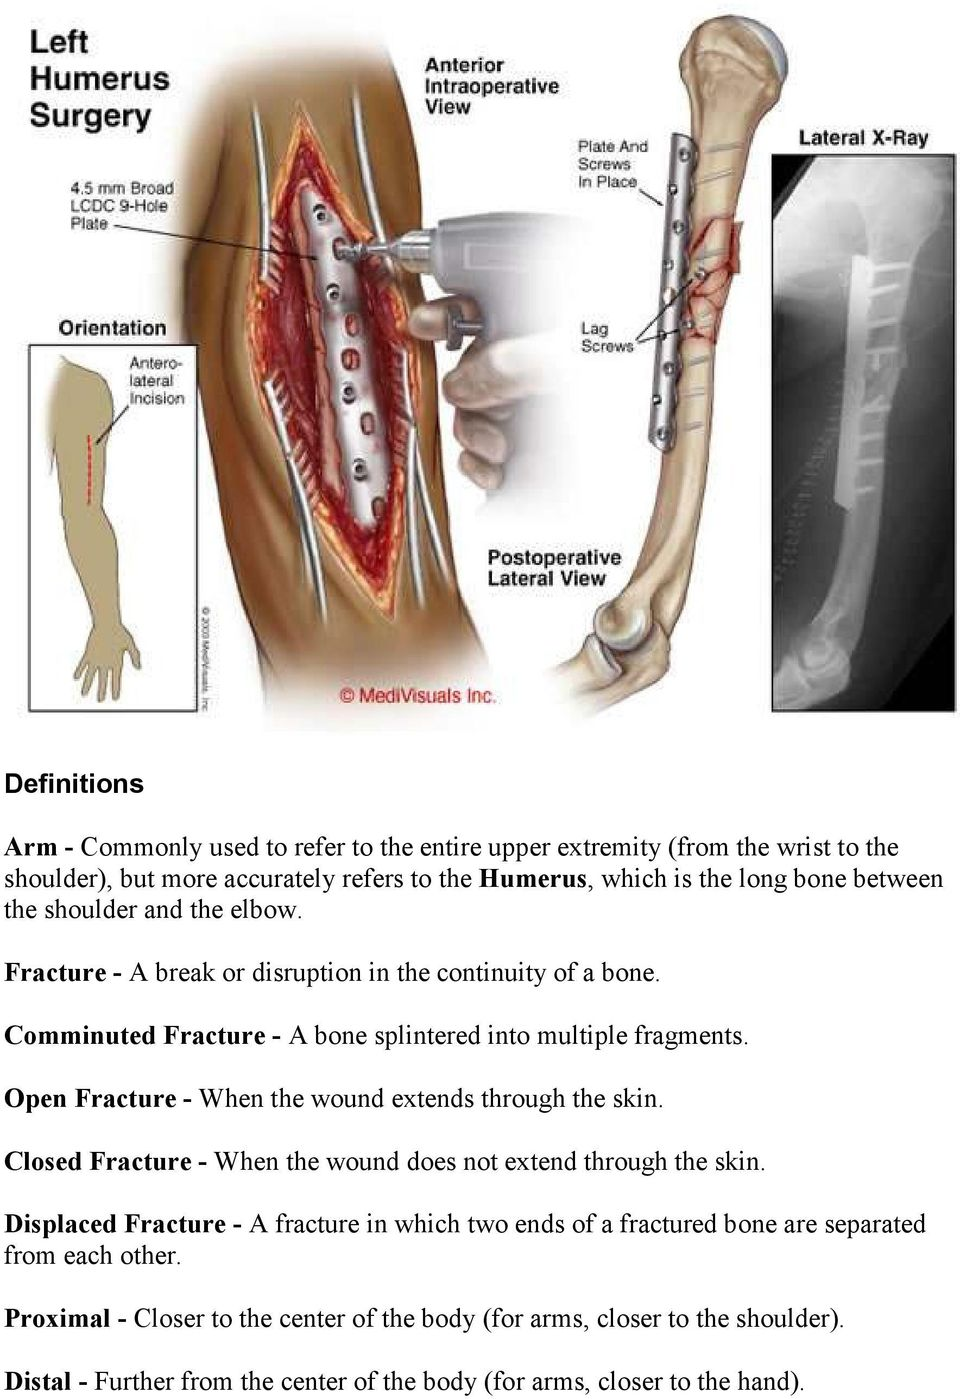 Open Fracture - When the wound extends through the skin. Closed Fracture - When the wound does not extend through the skin.